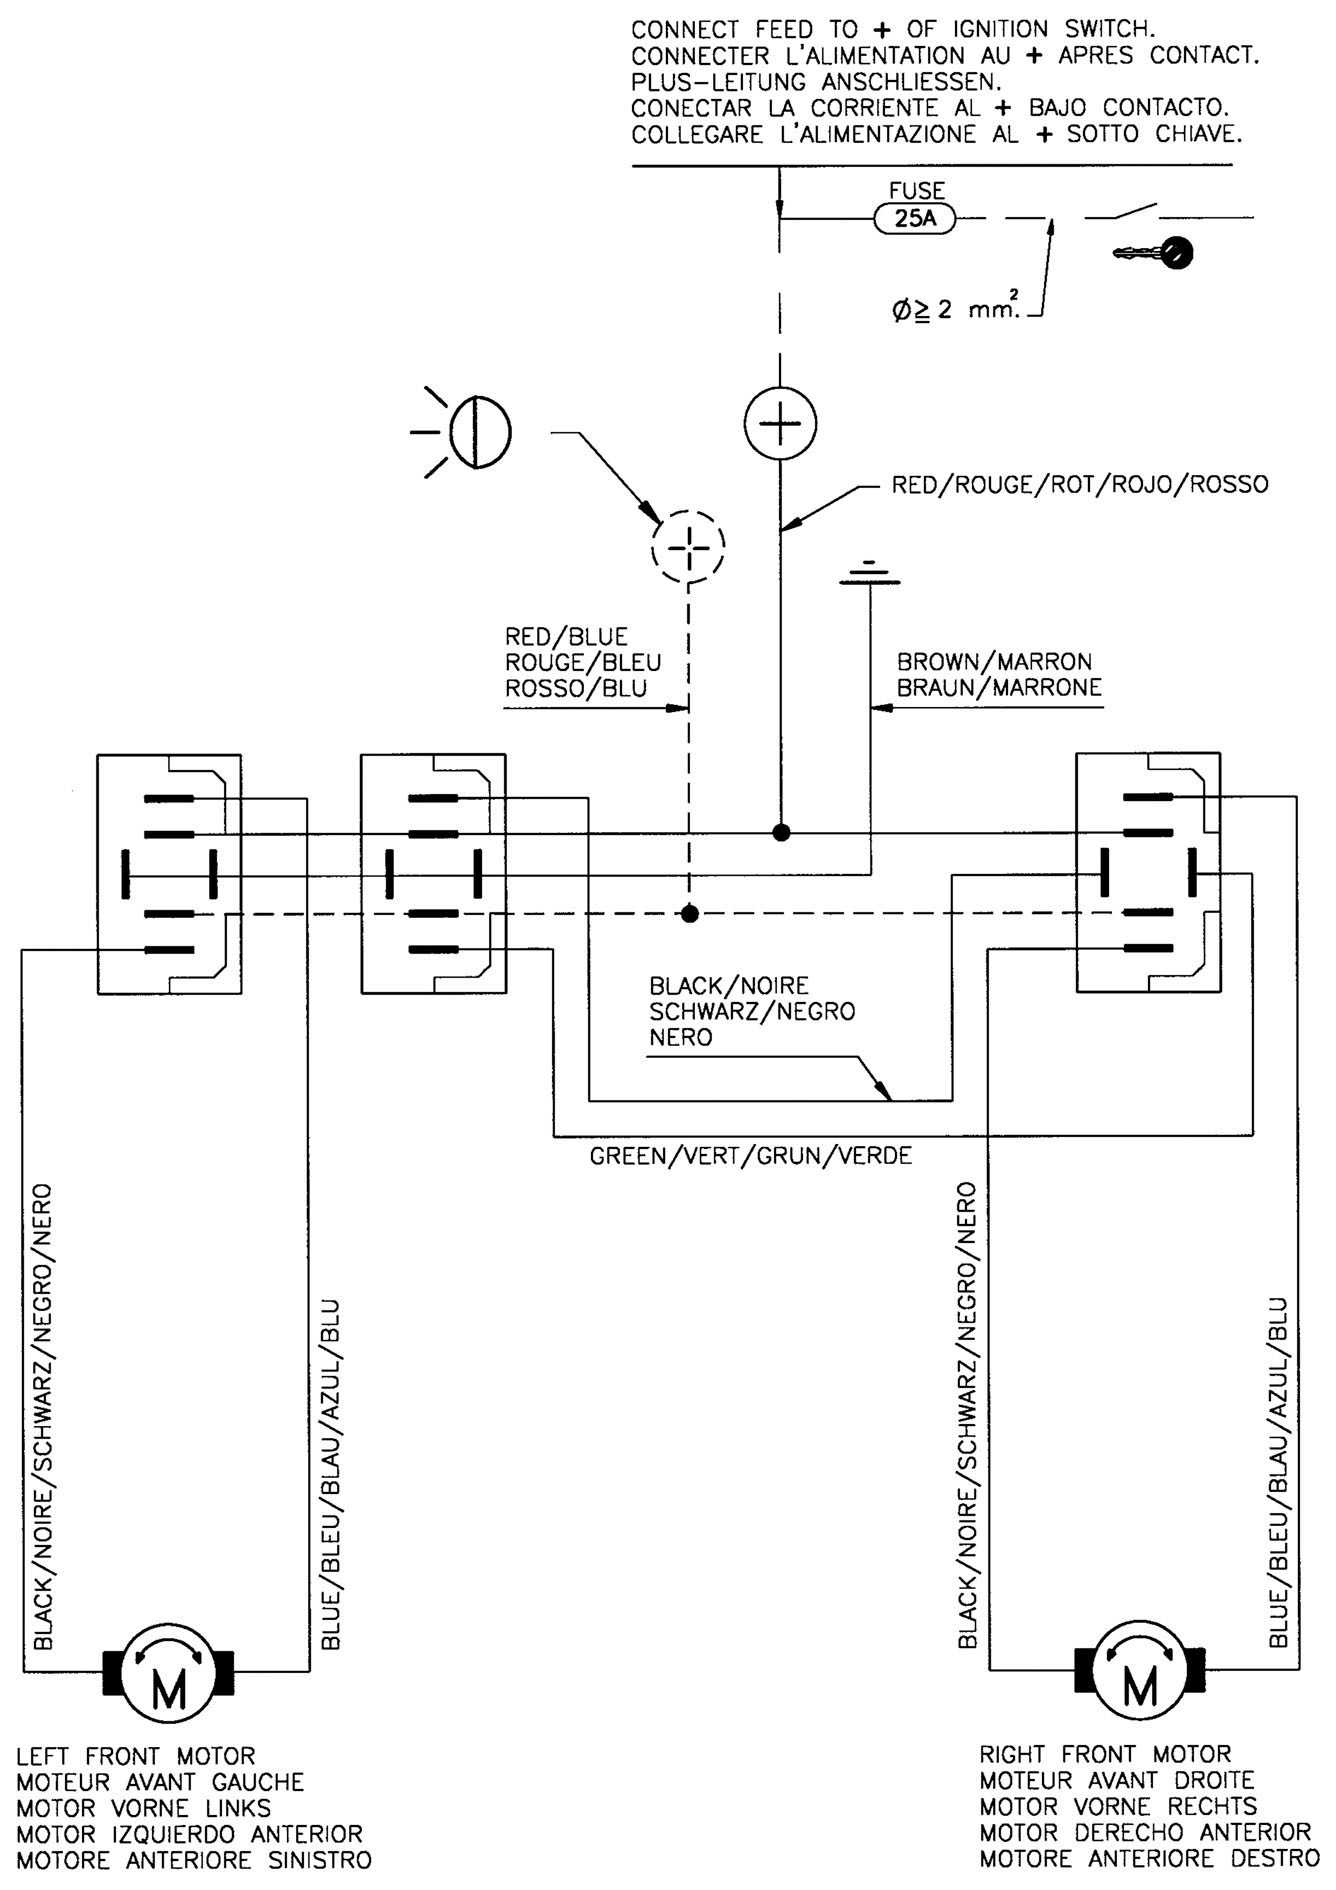 ... Switches Amazing Universal Power Window Wiring Diagram Simple Wiring Of  Wiring. Related Post